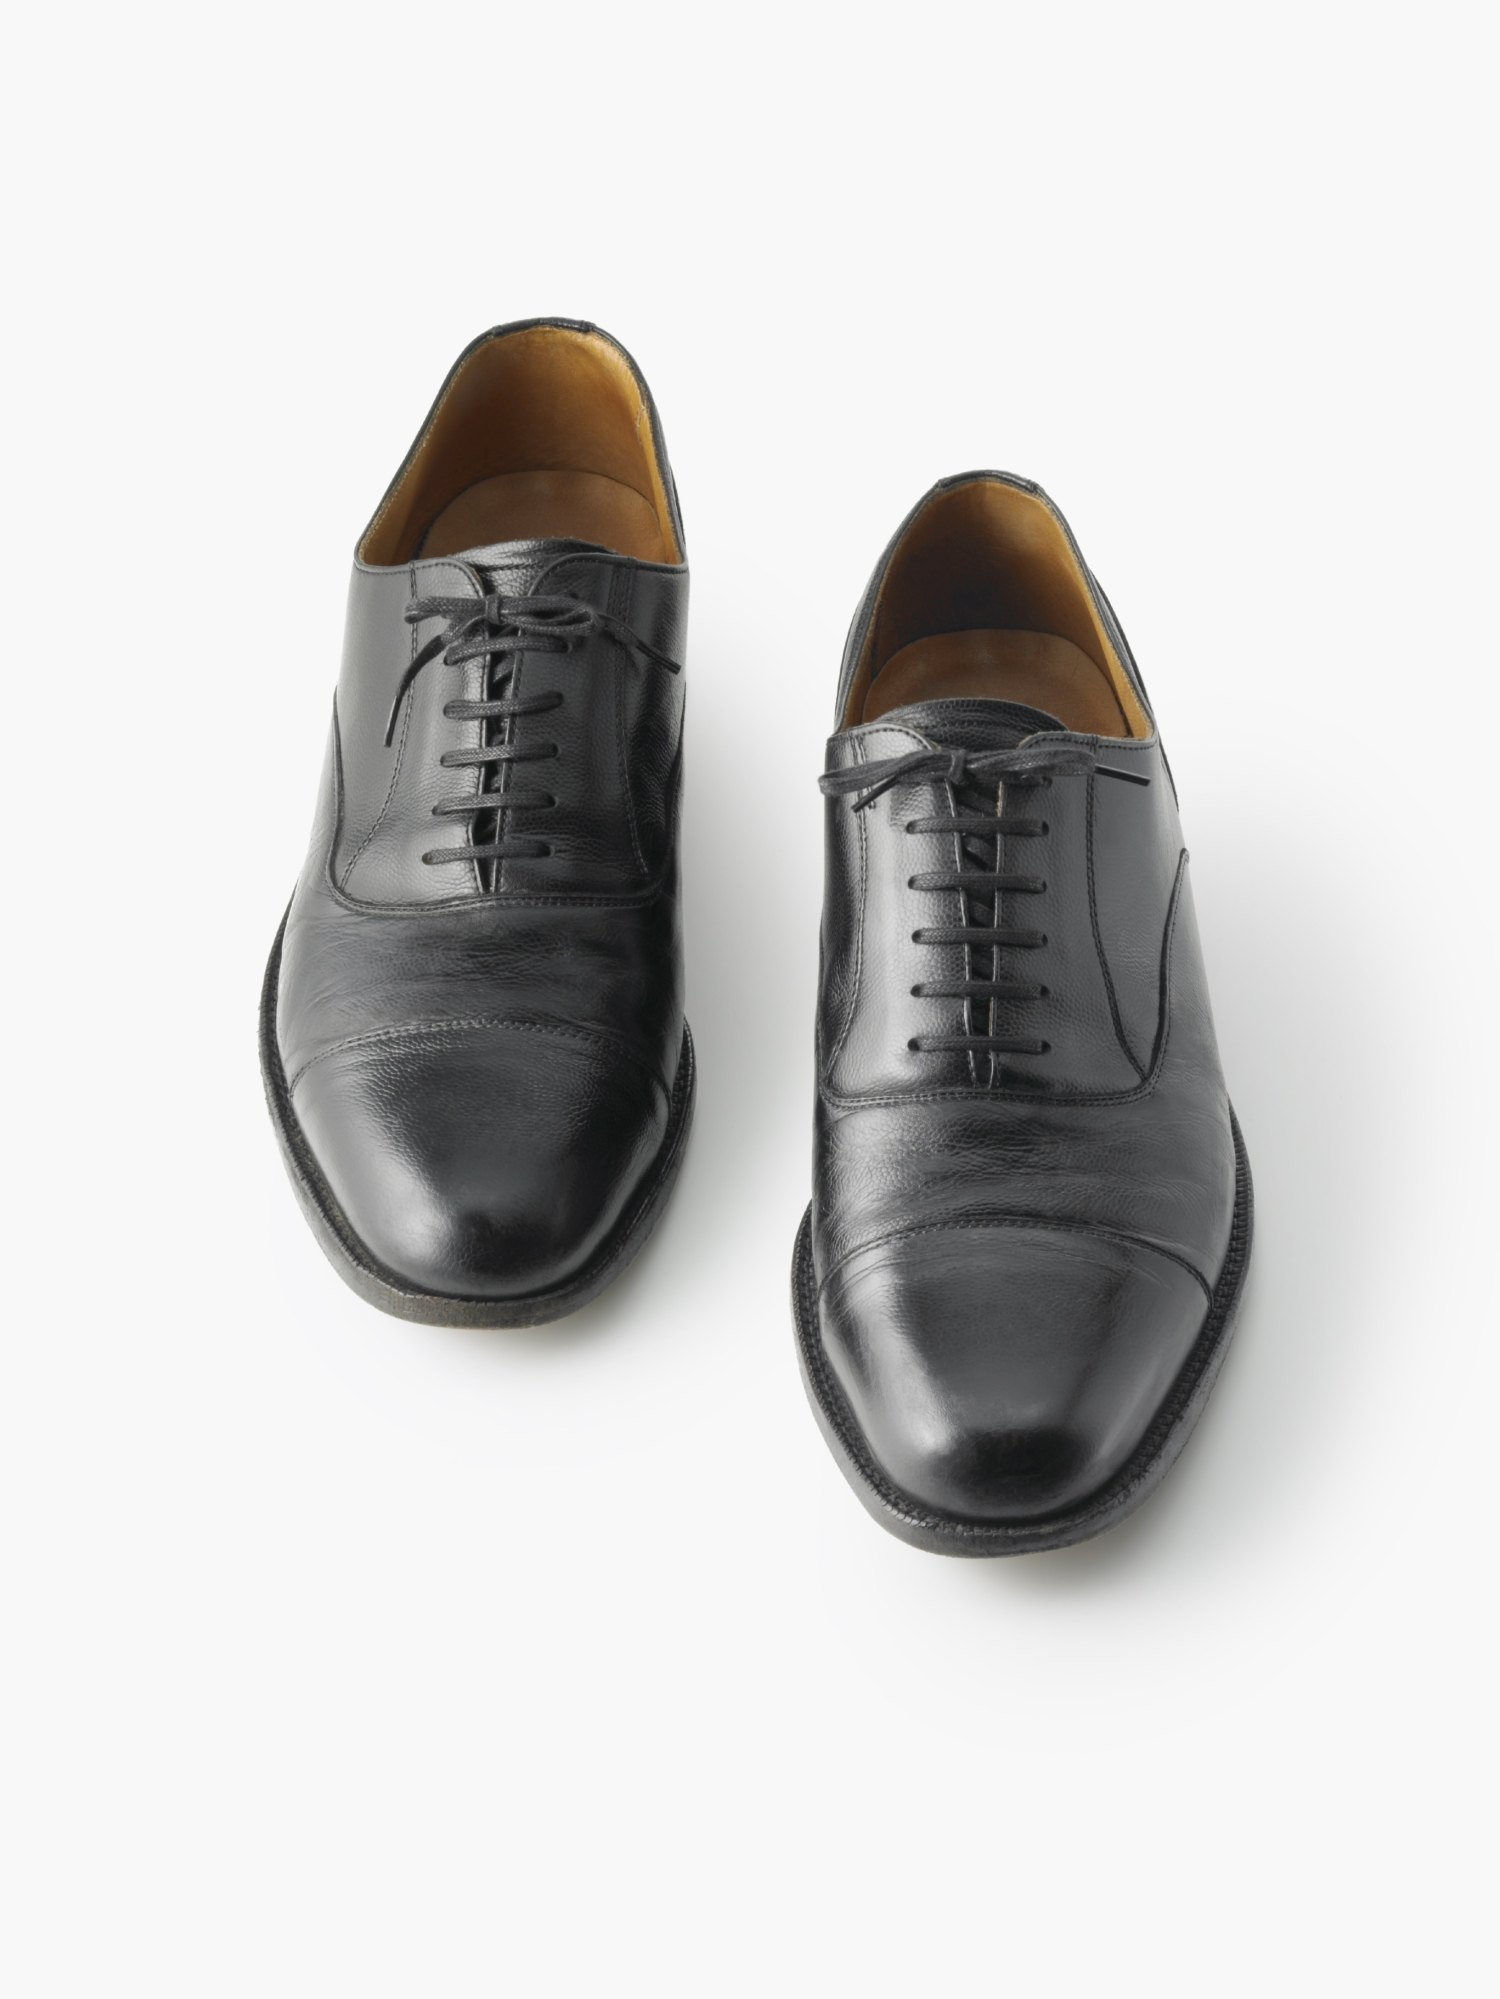 How To Remove Creases On Leather Shoes